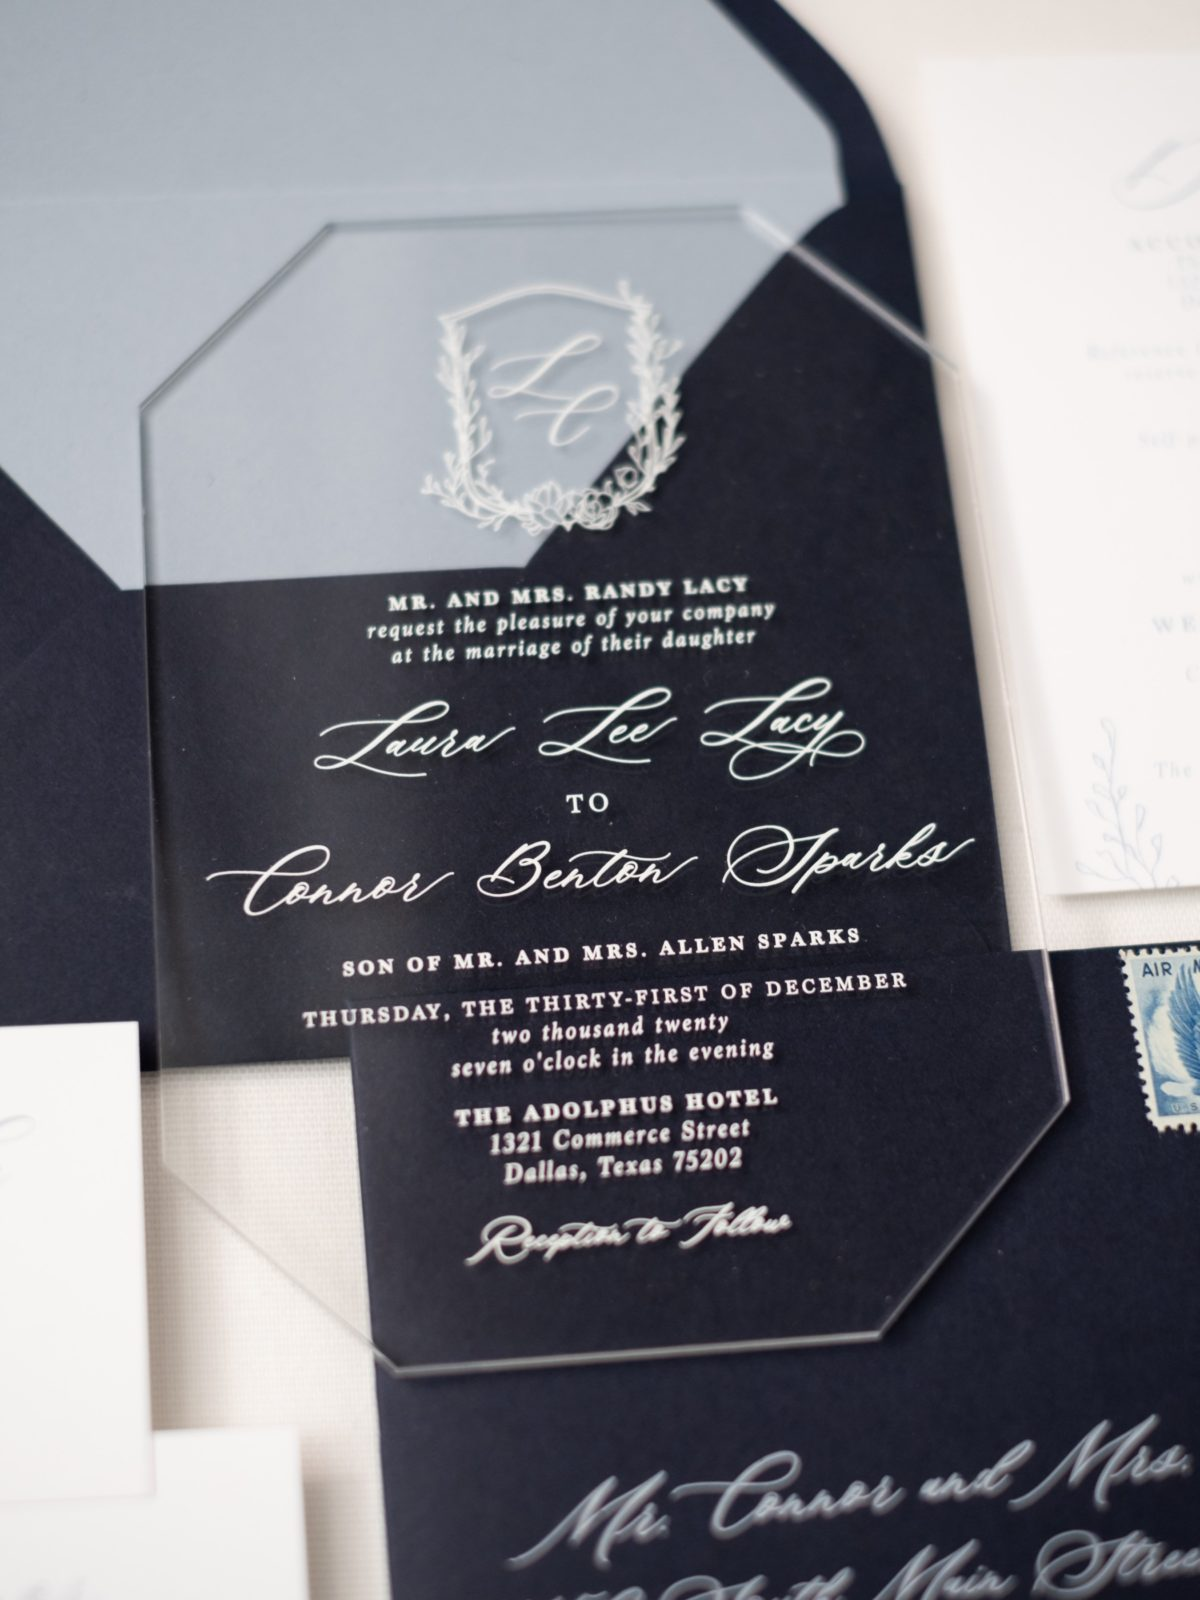 Acrylic wedding invitation with custom monogram by Brown Fox Creative | Alexa Kay Events